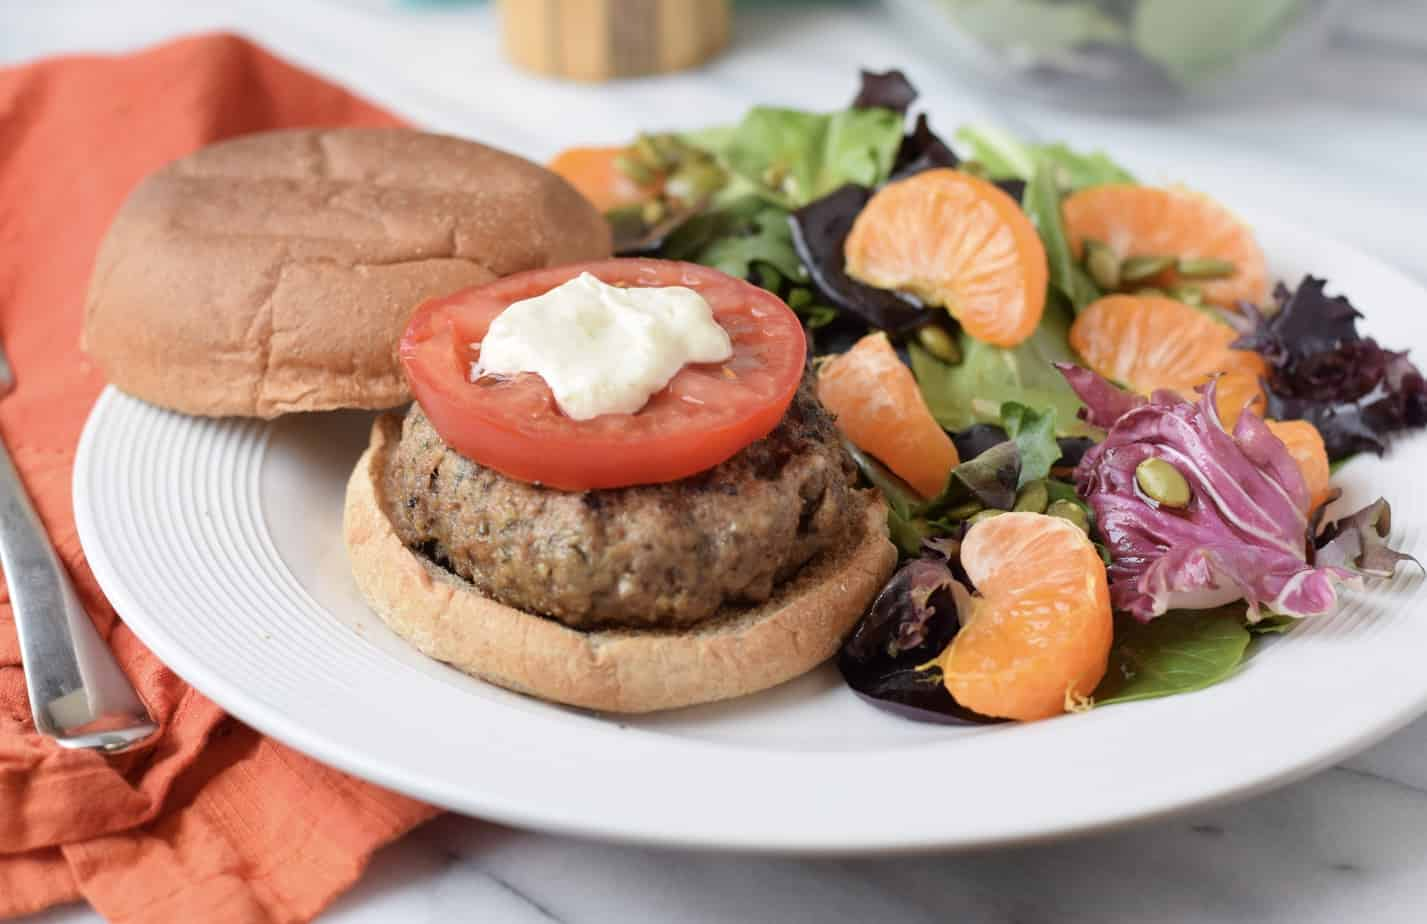 Beef and mushroom burger topped with tomato on plate with salad.